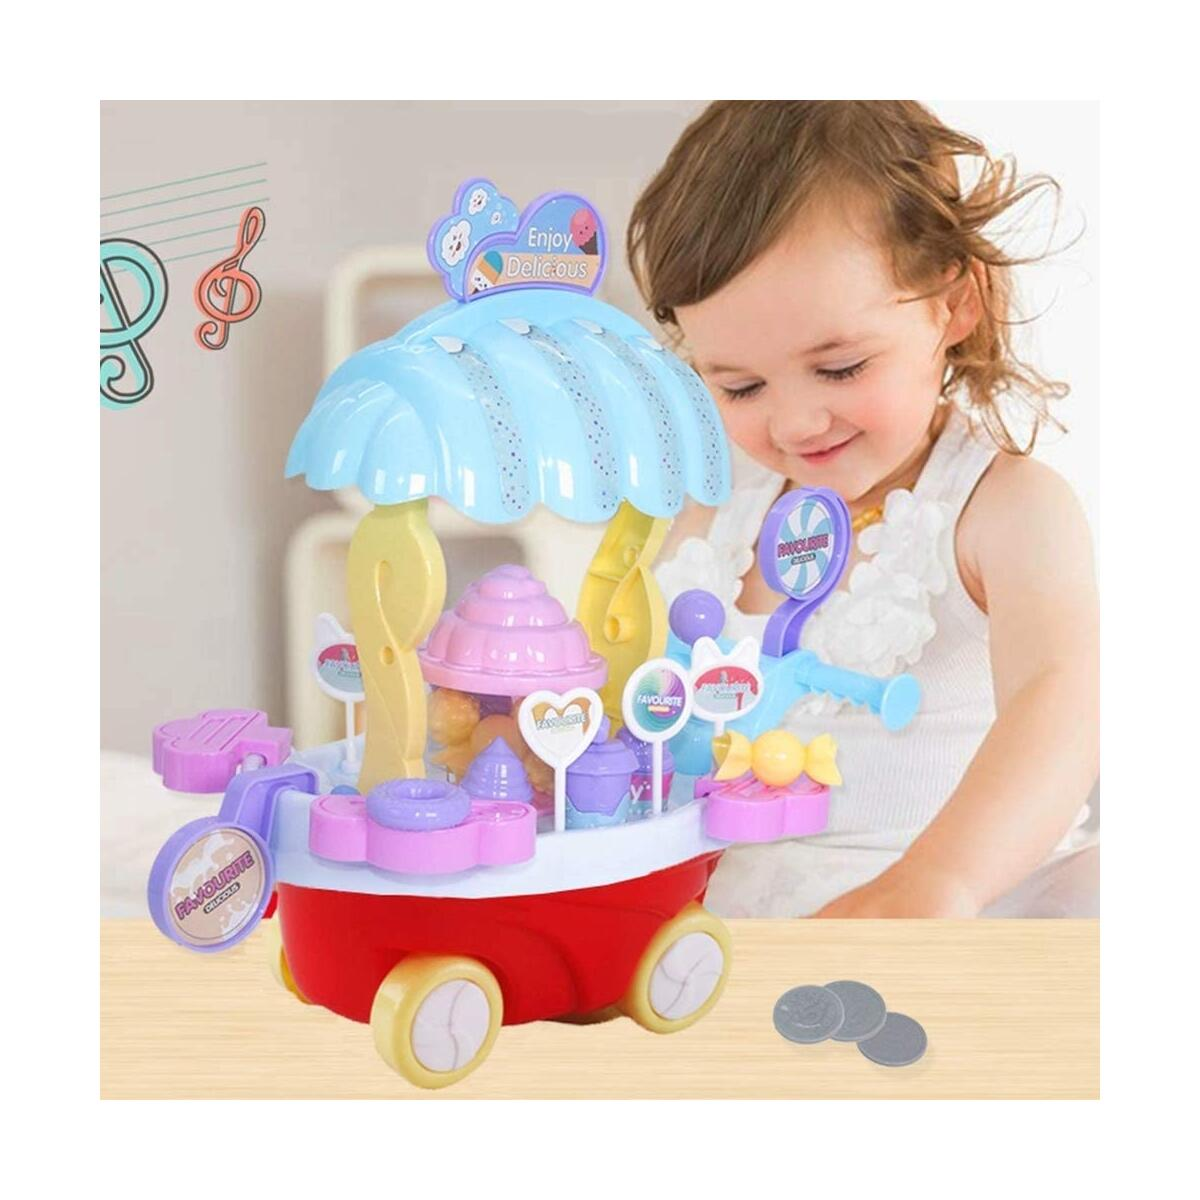 WISHTIME Ice Cream Cart Toy - Mini Pretend Food Snakes Truck Play Set with Rotating Light and Music for Kids Toddlers Girls